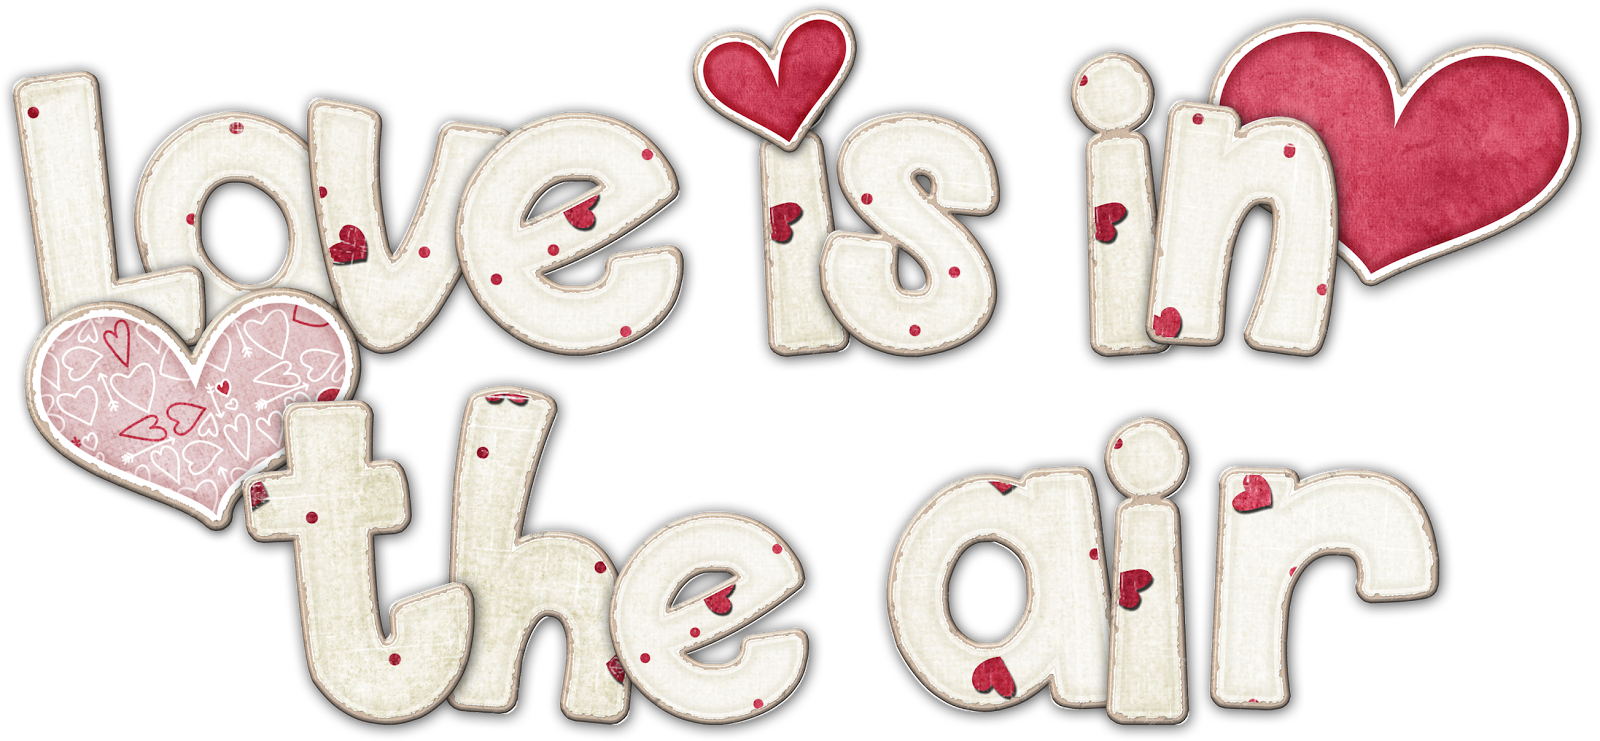 Love is in the air clipart.